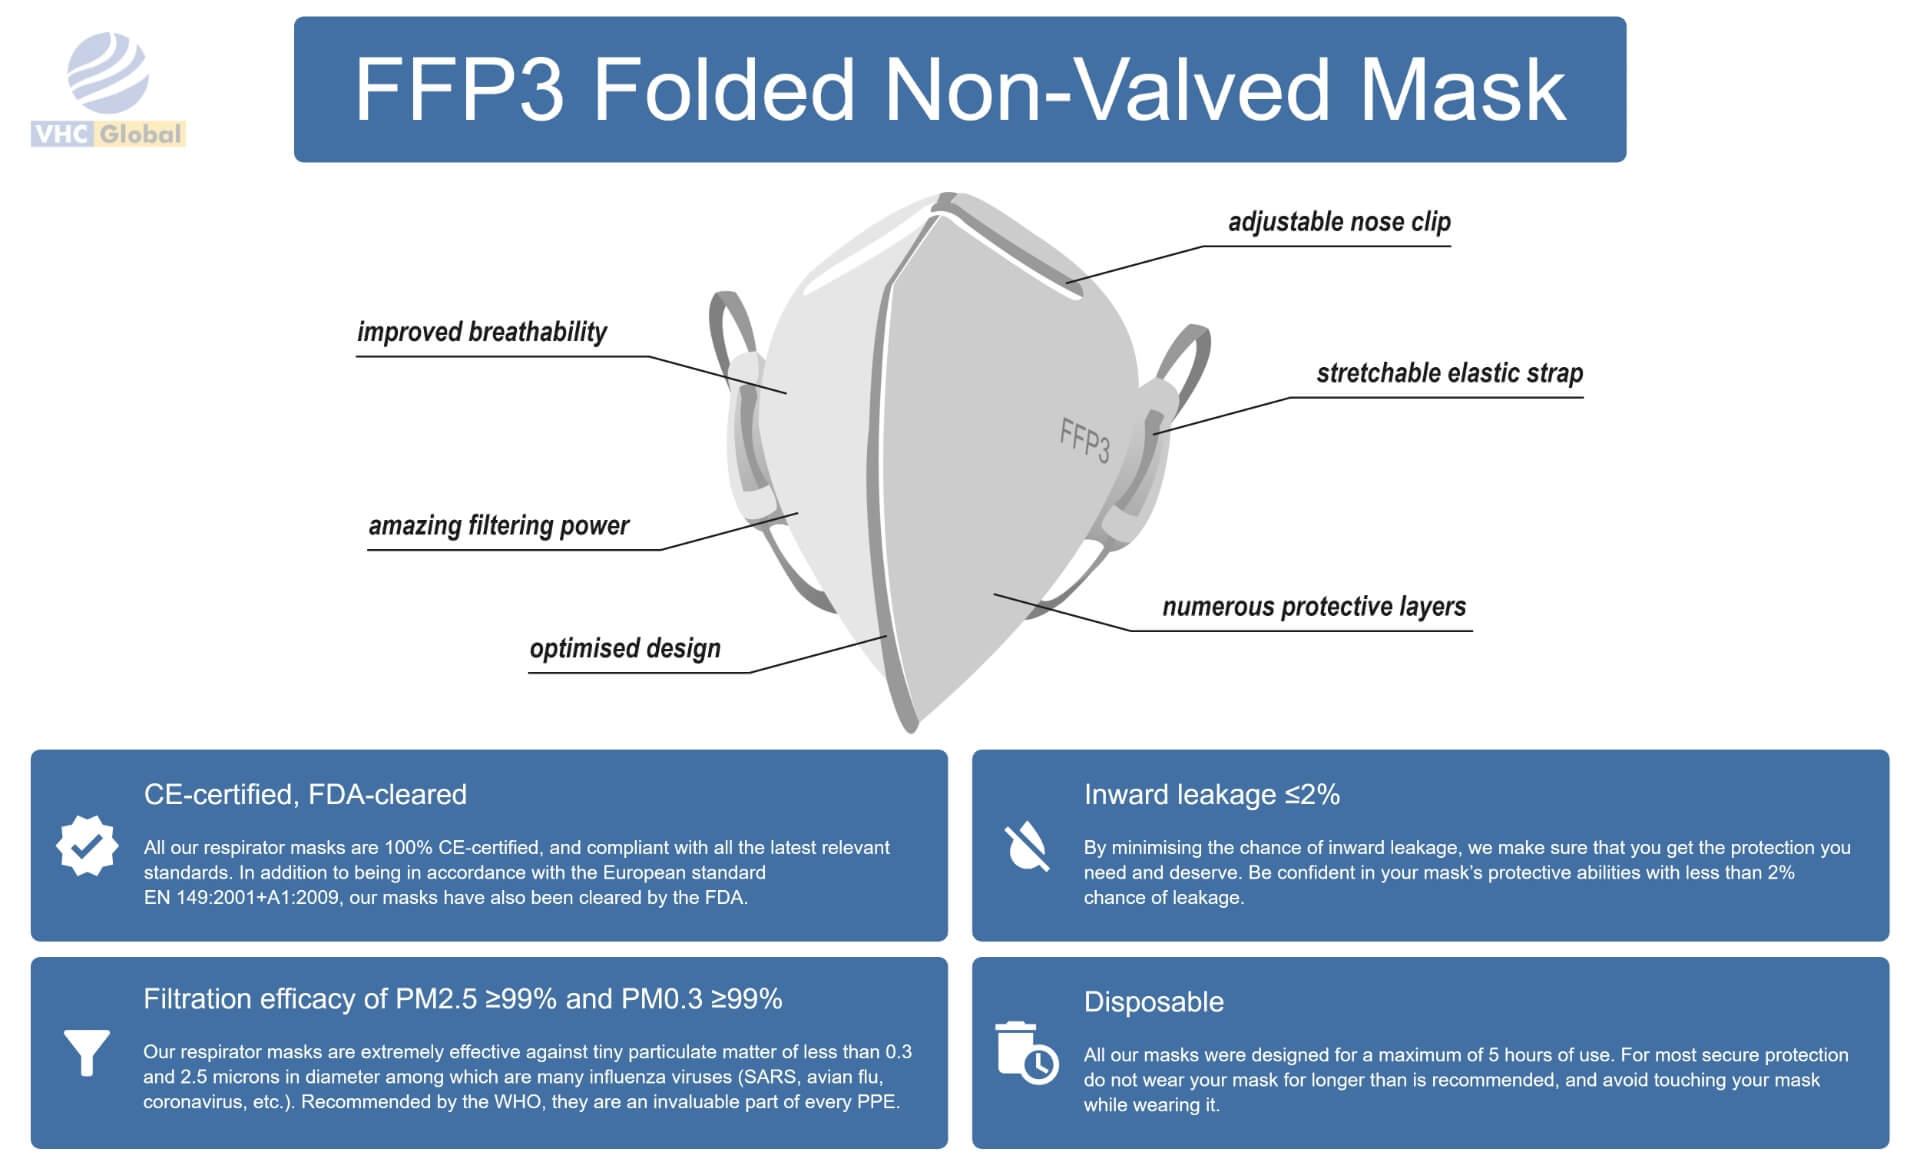 Infographic for the FFP3 Folded Non-Valded Mask. All details for this mask are on this infographic. From nose to the chin. Adjustable nose clip, improved breathability, numerous protective layers, amazing filtering power, optimized design and stretchable elastic strap